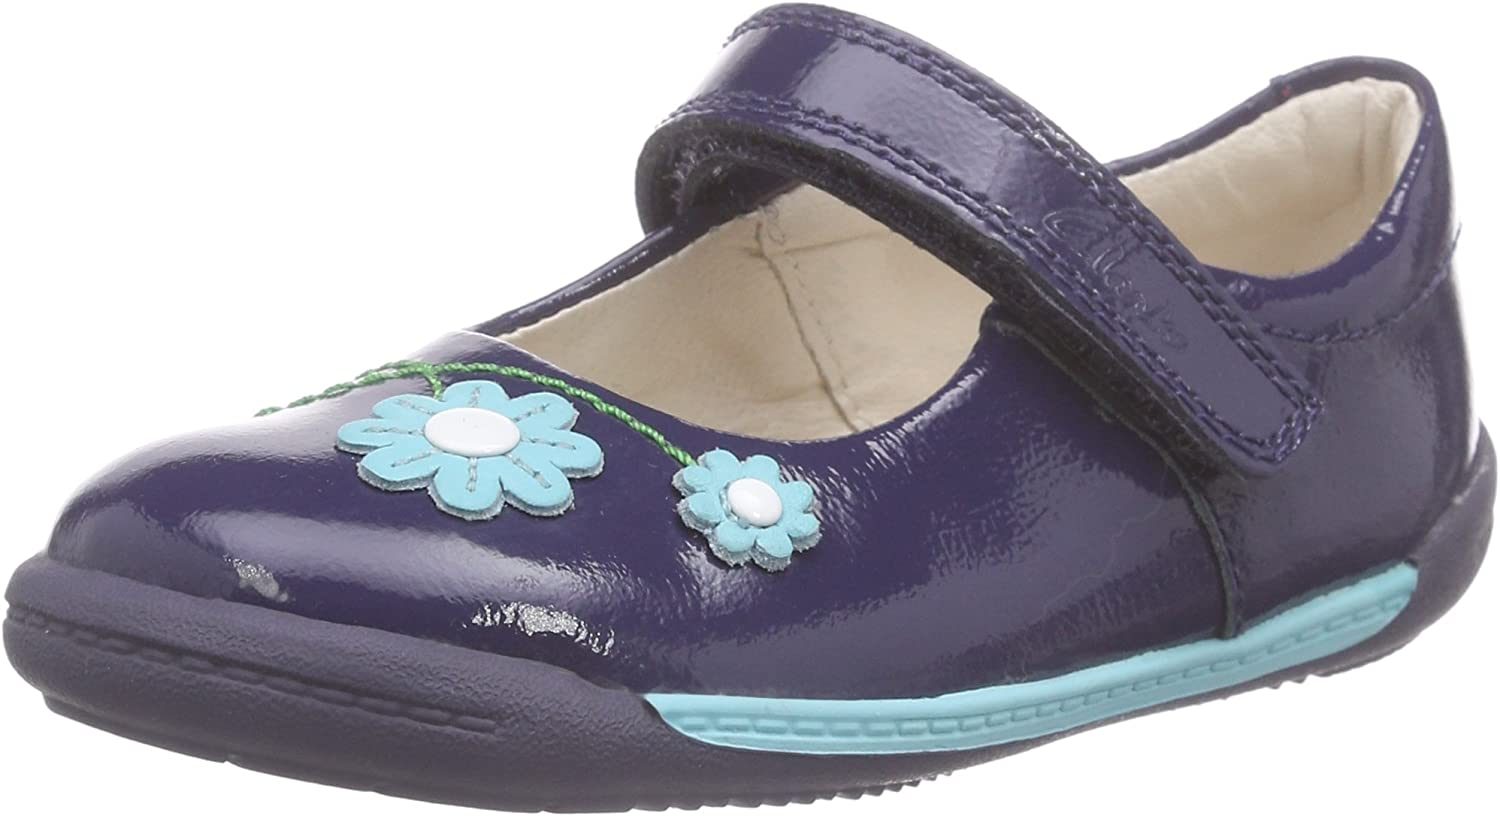 Sneakers Unisex Babies/' First Shoes Clarks Softly Jam FST